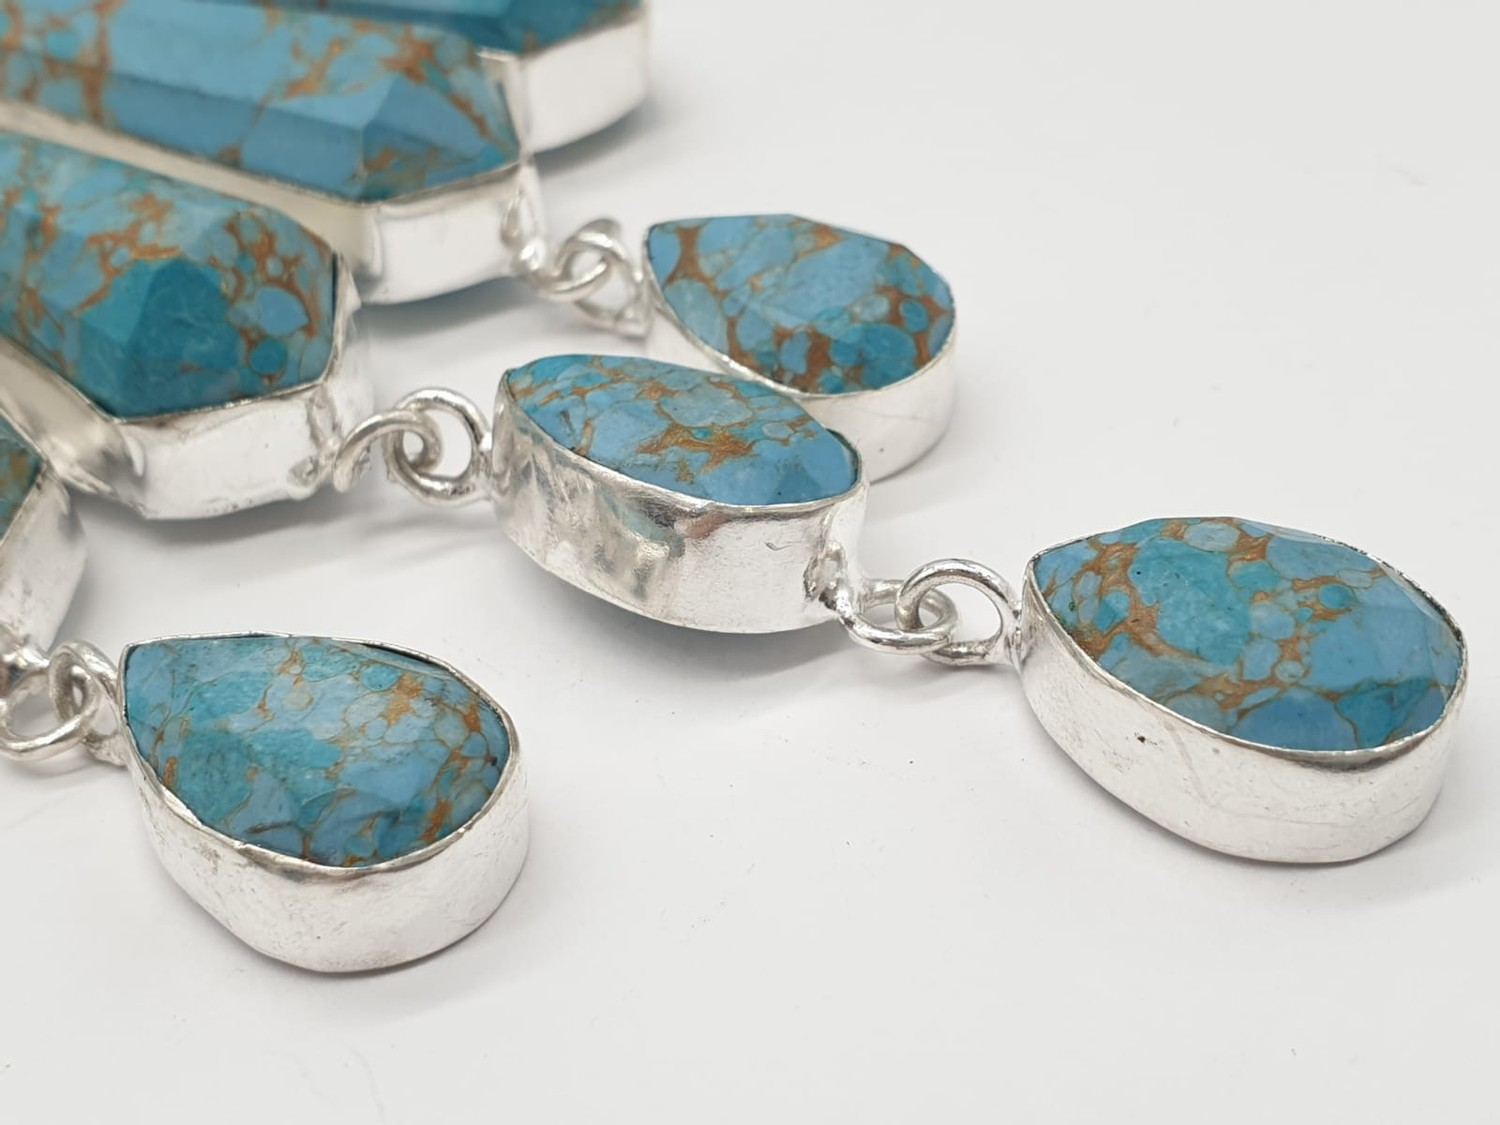 A Pharaonic style necklace and earrings set with light brown-gold veined turquoise obelisks and - Image 8 of 24